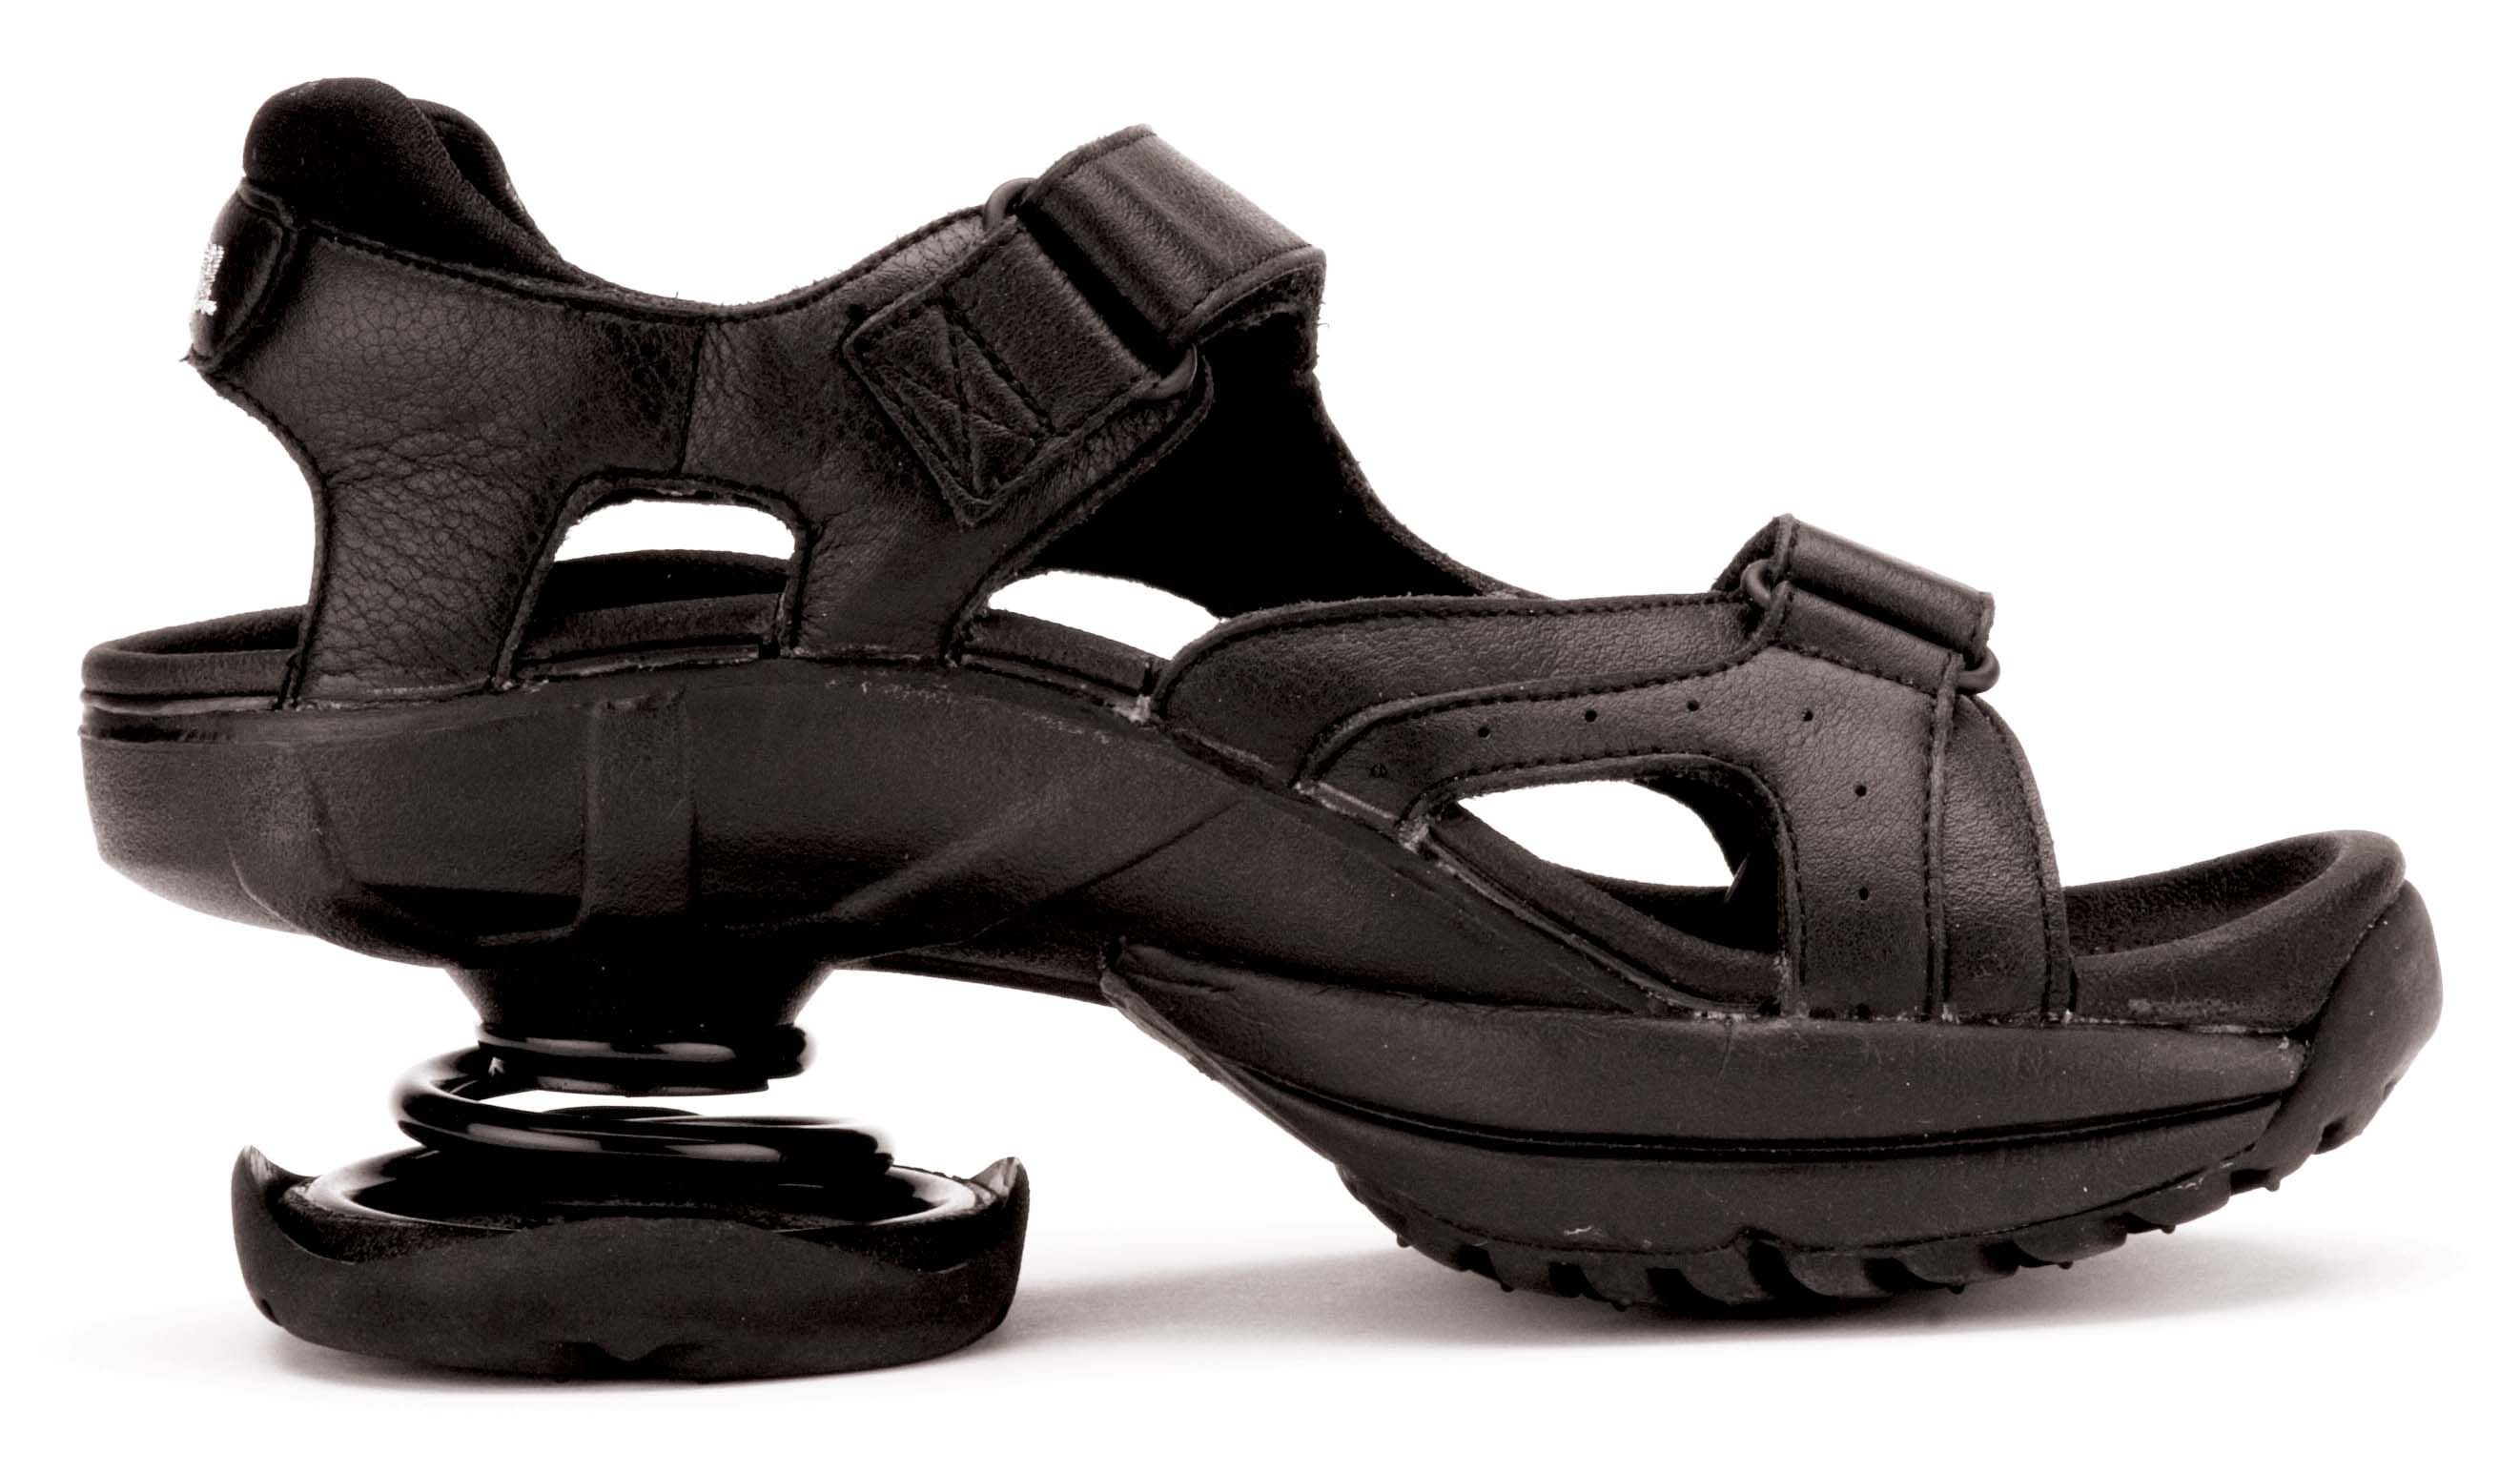 most loafers comforter mens work leather on swiss comfortable itm by slip blk real arbete resistant shoes alpine